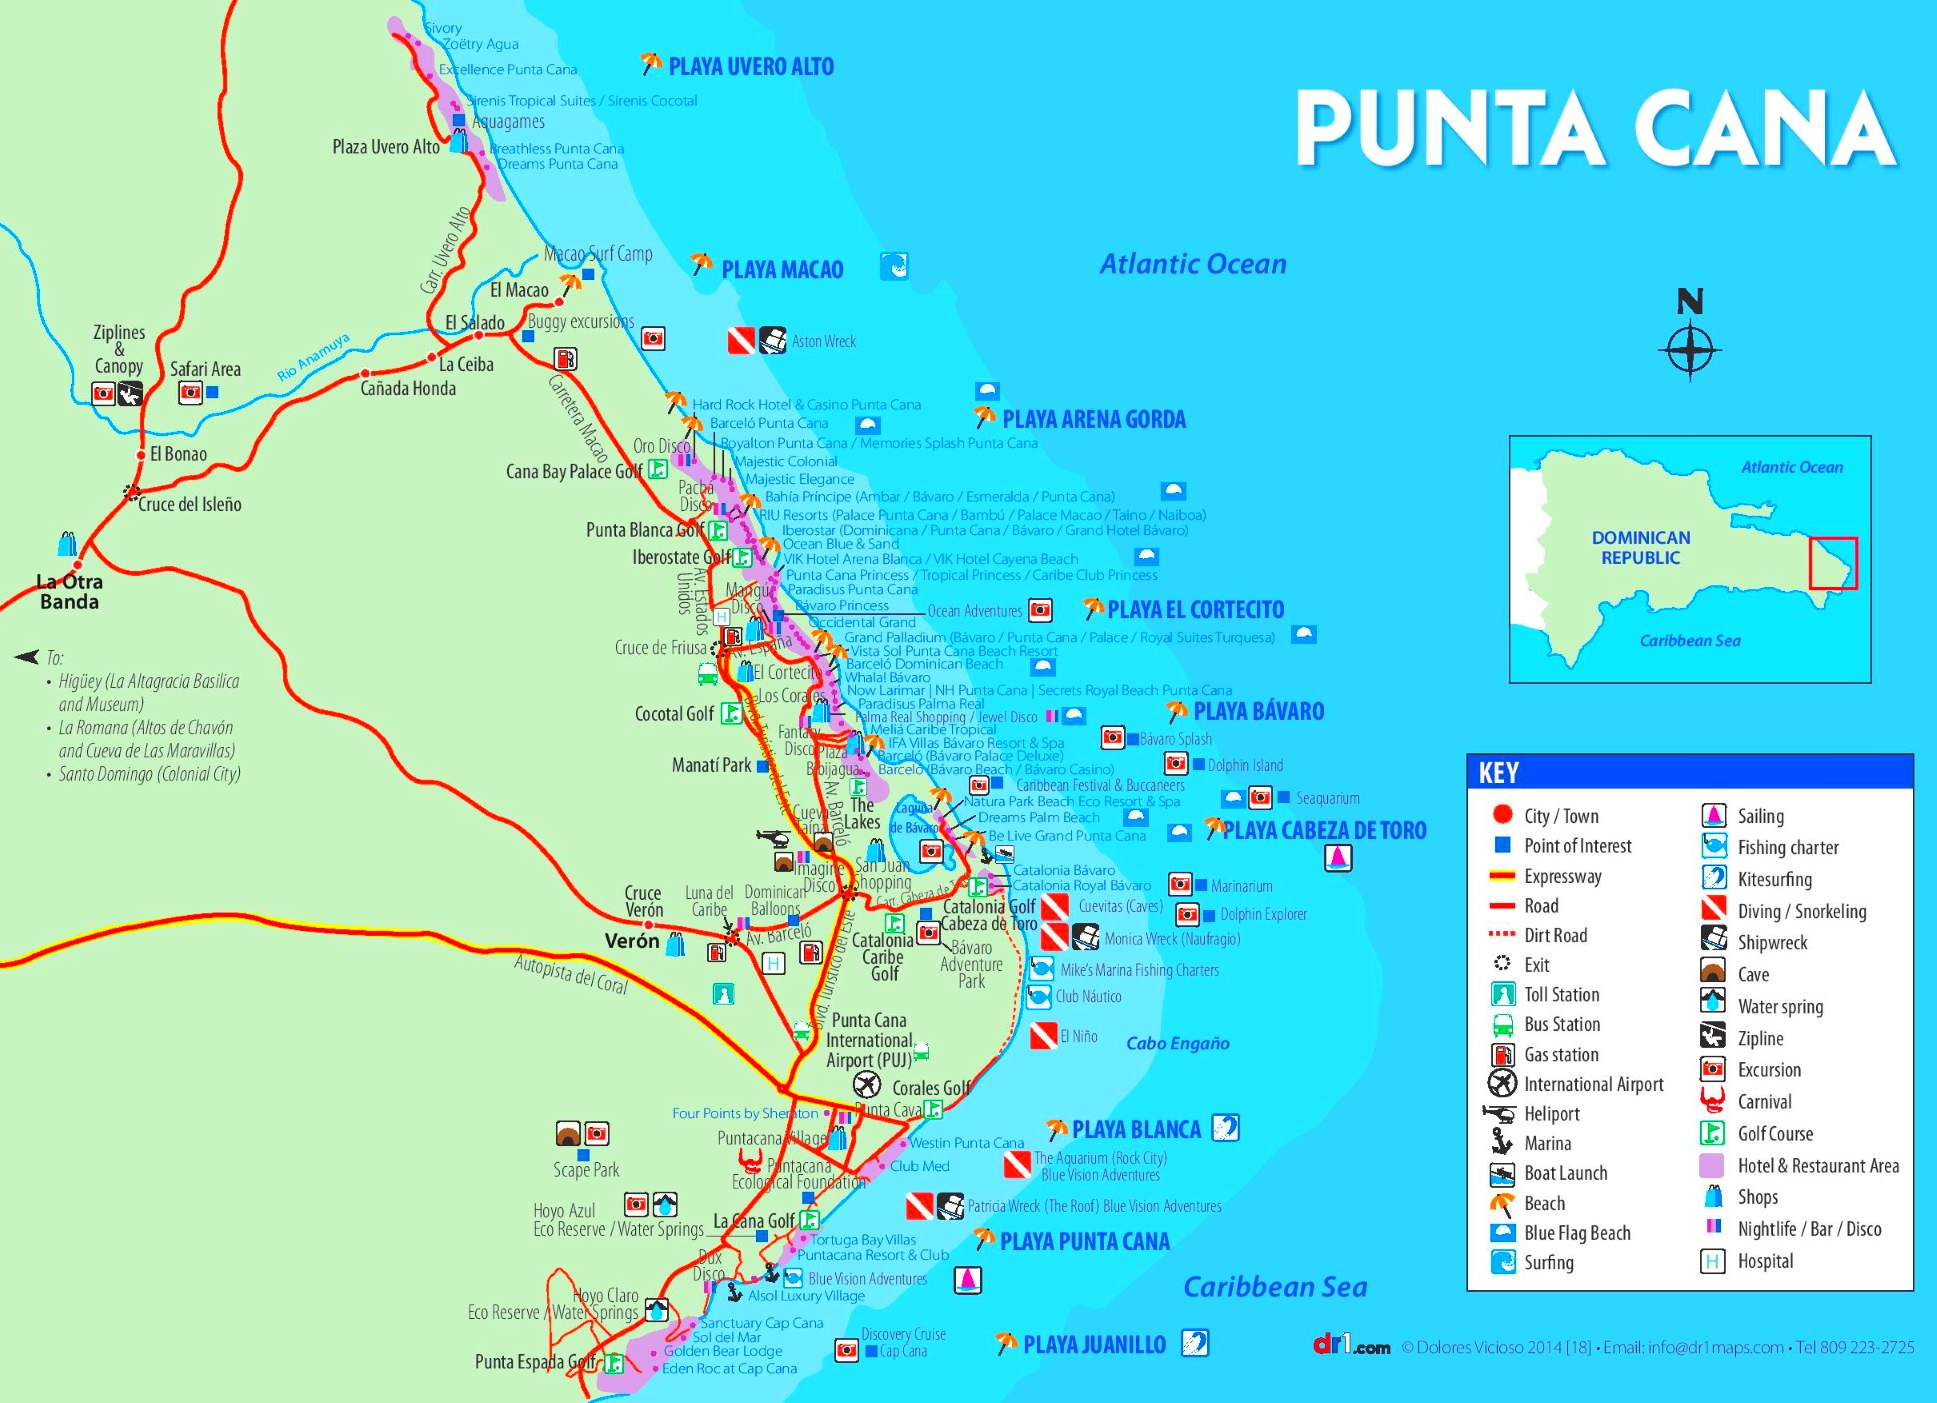 Punta cana hotel map for Vacations to punta cana